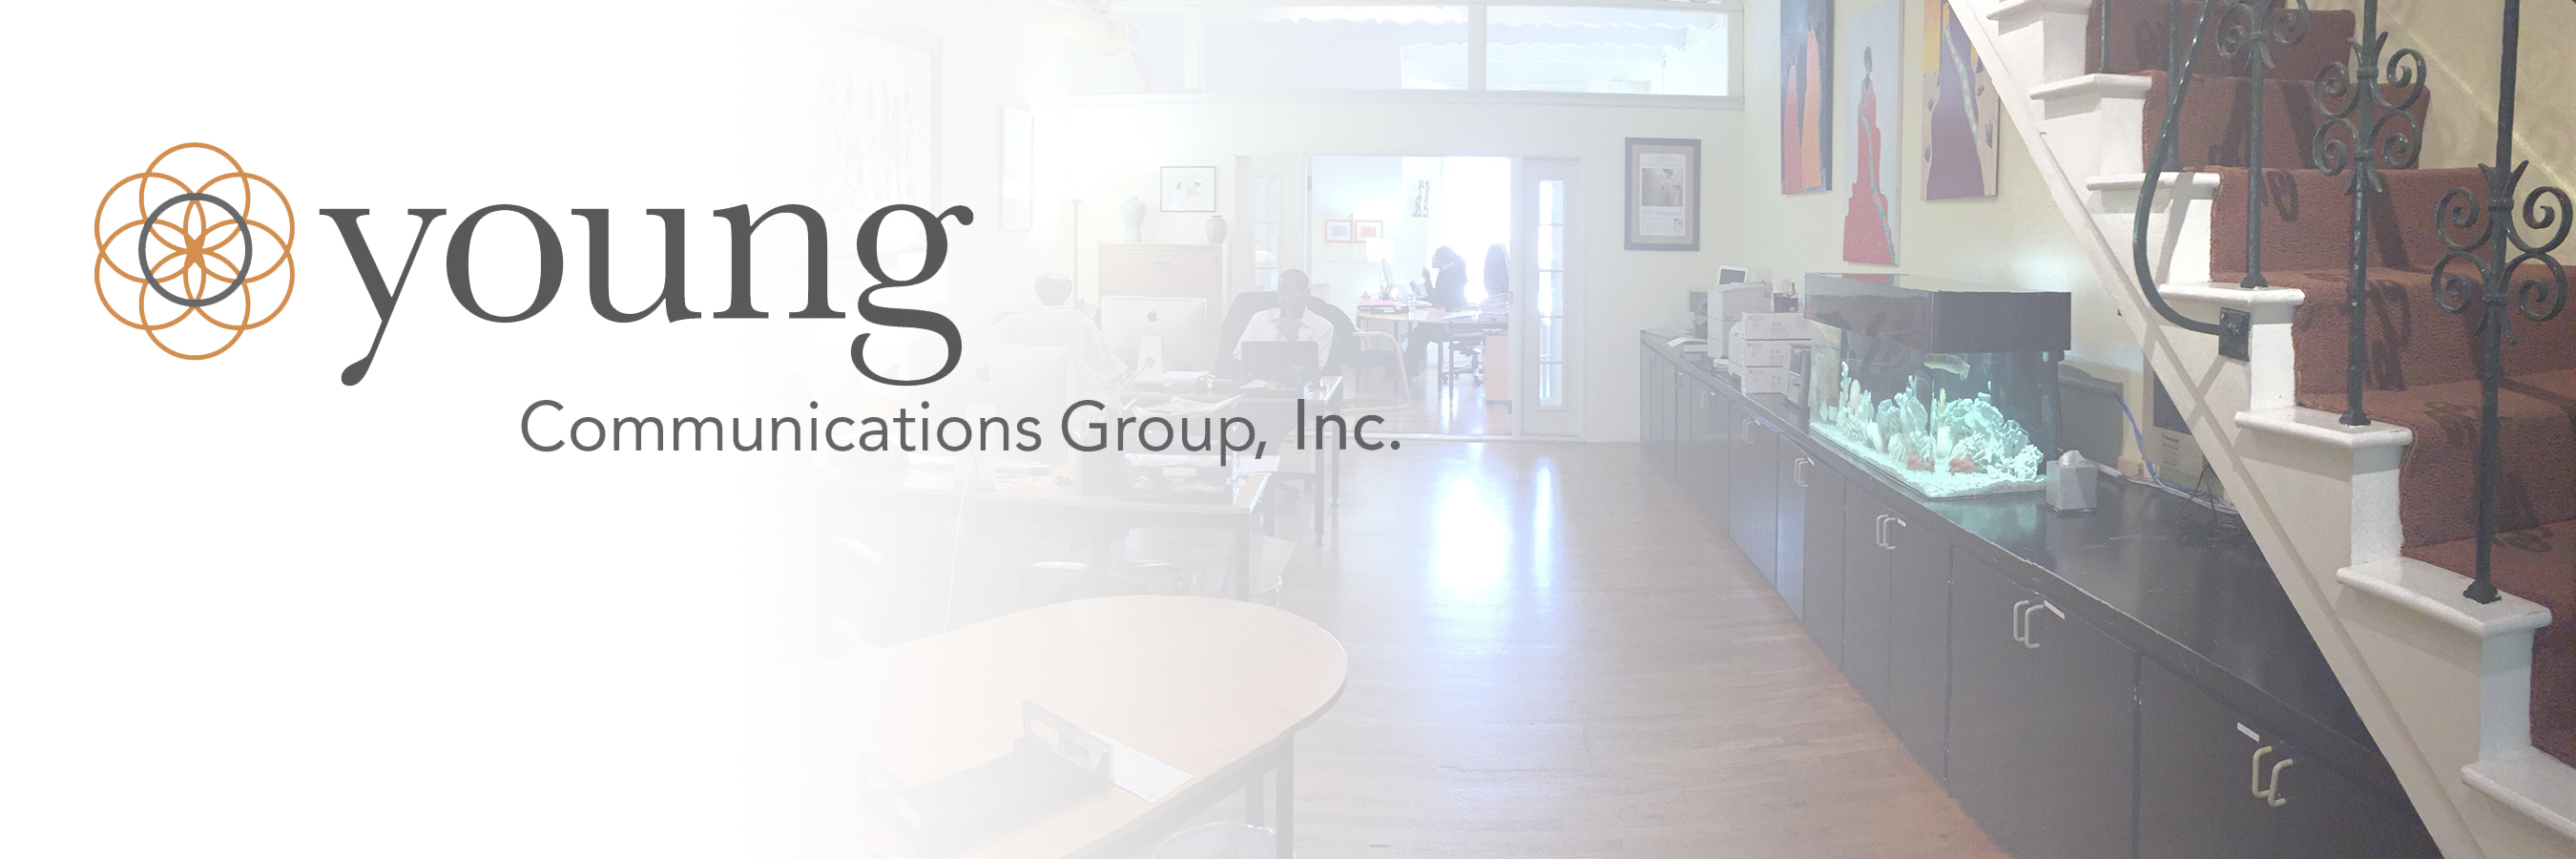 Young Communications Group, Inc.